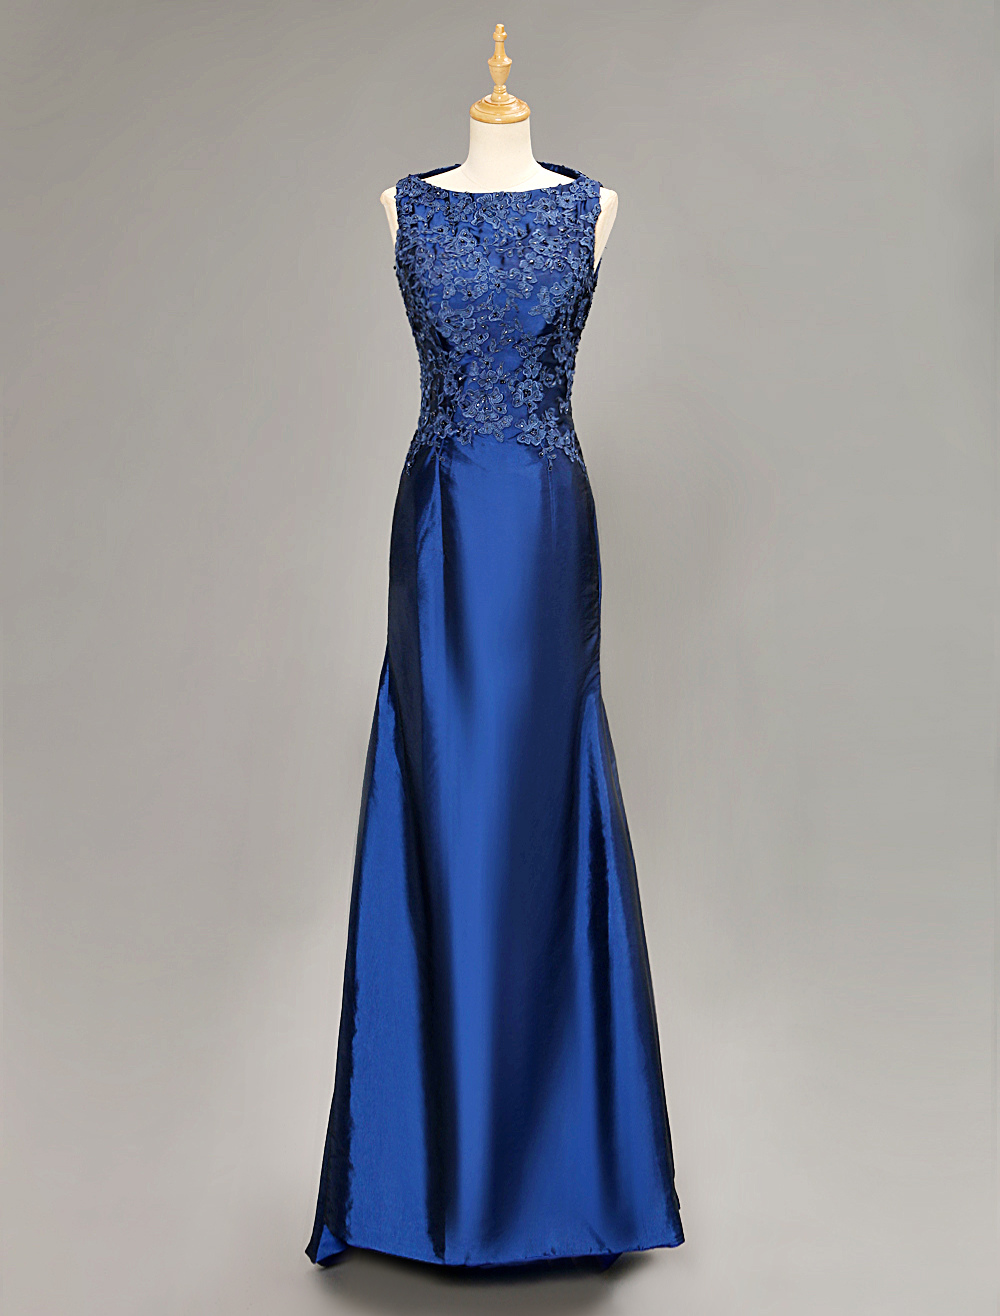 Royal Blue Taffeta Beading Mother Of Bride Dress With Applique Decor